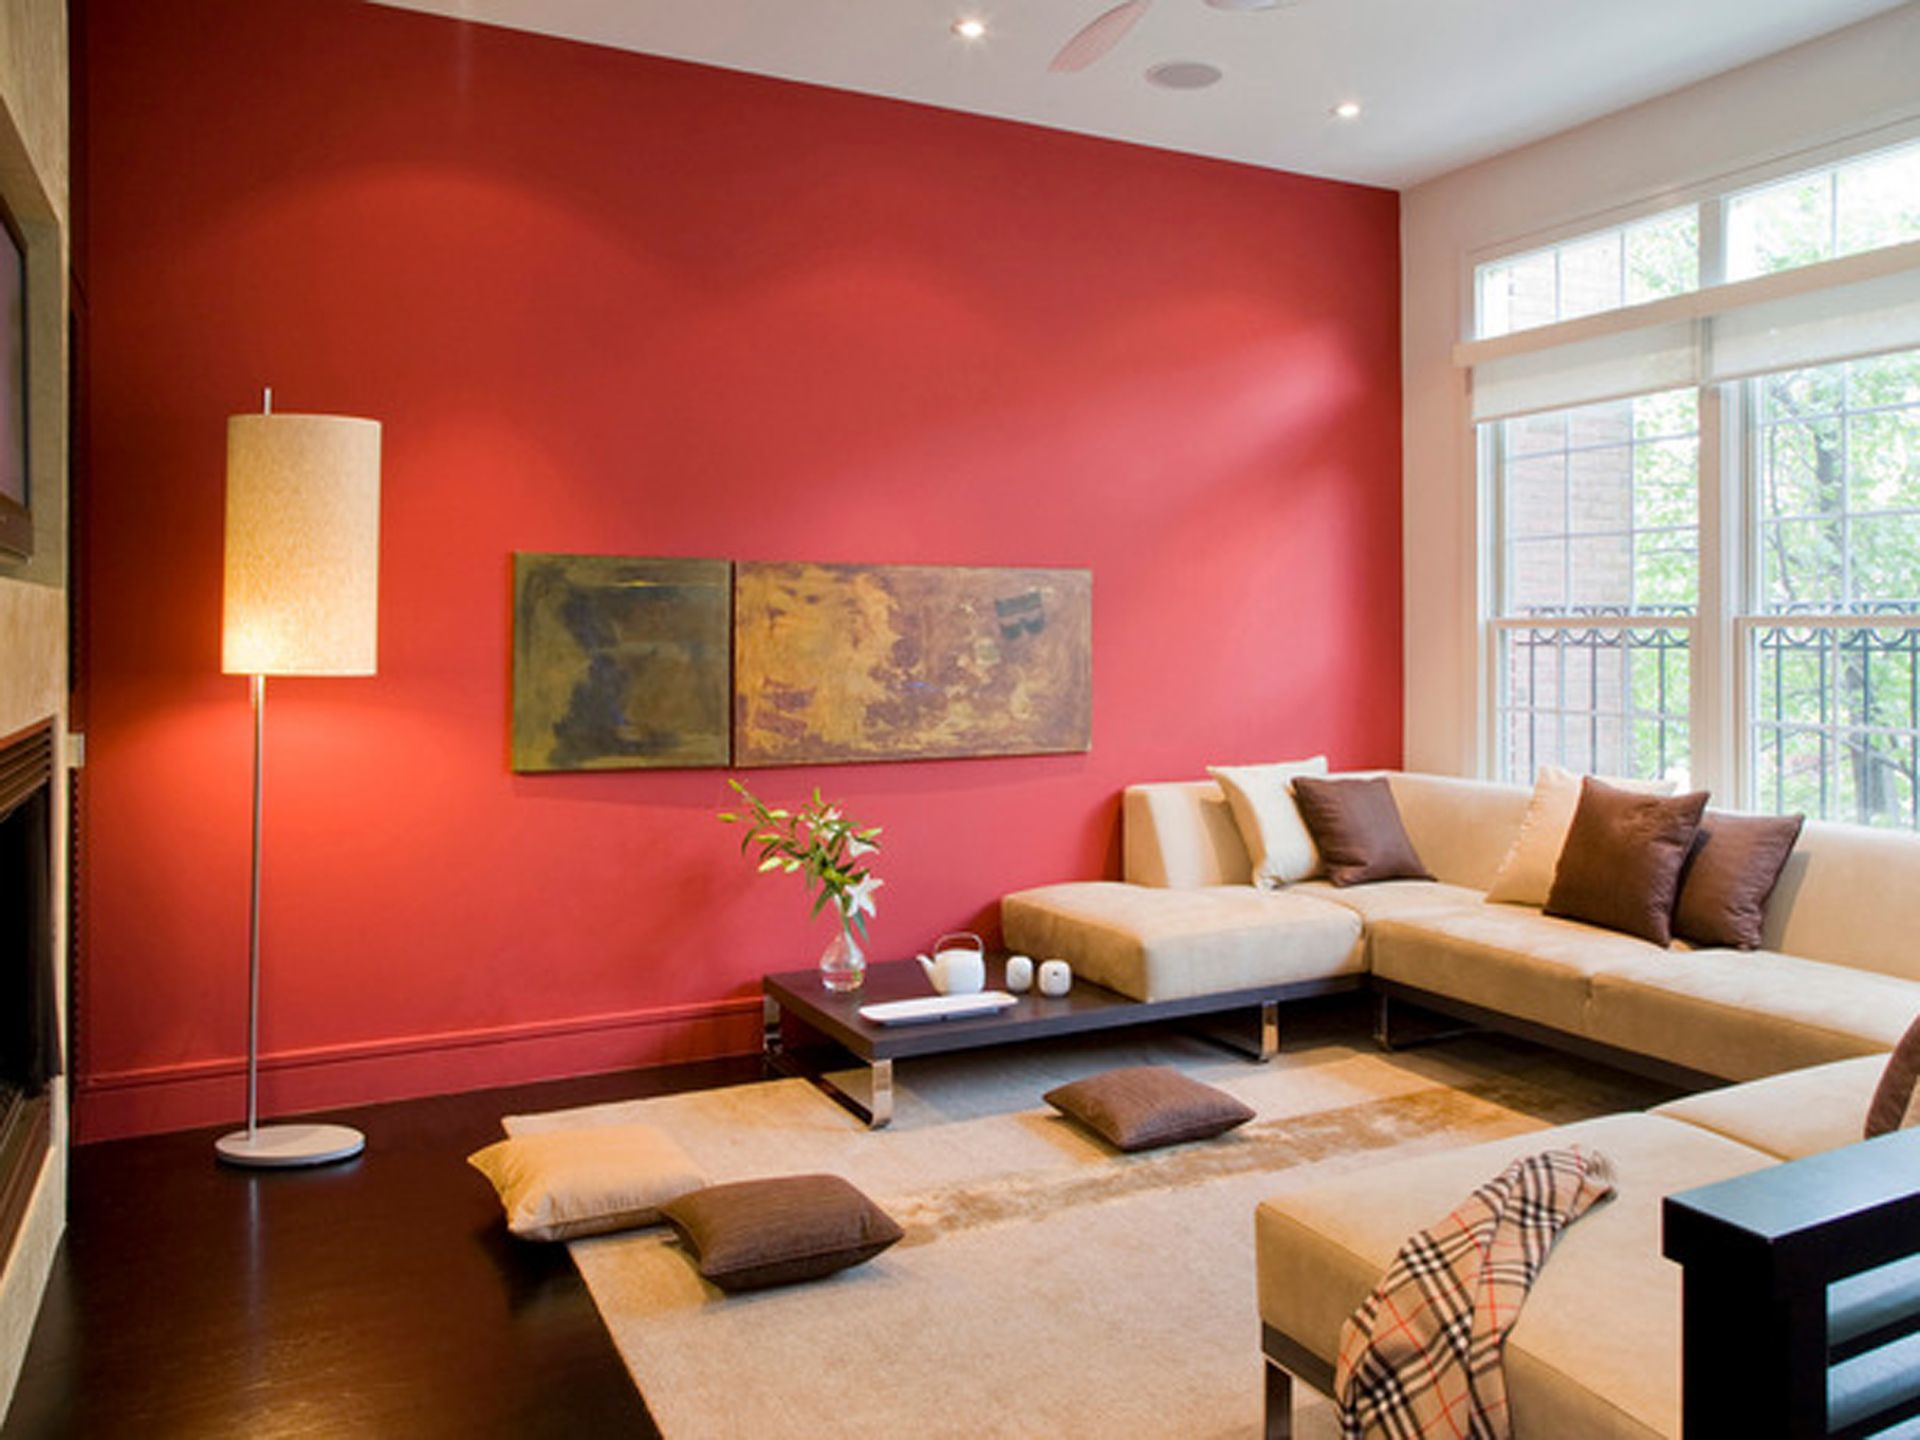 Red accent wall used in living area | Living room 2 | Pinterest ...